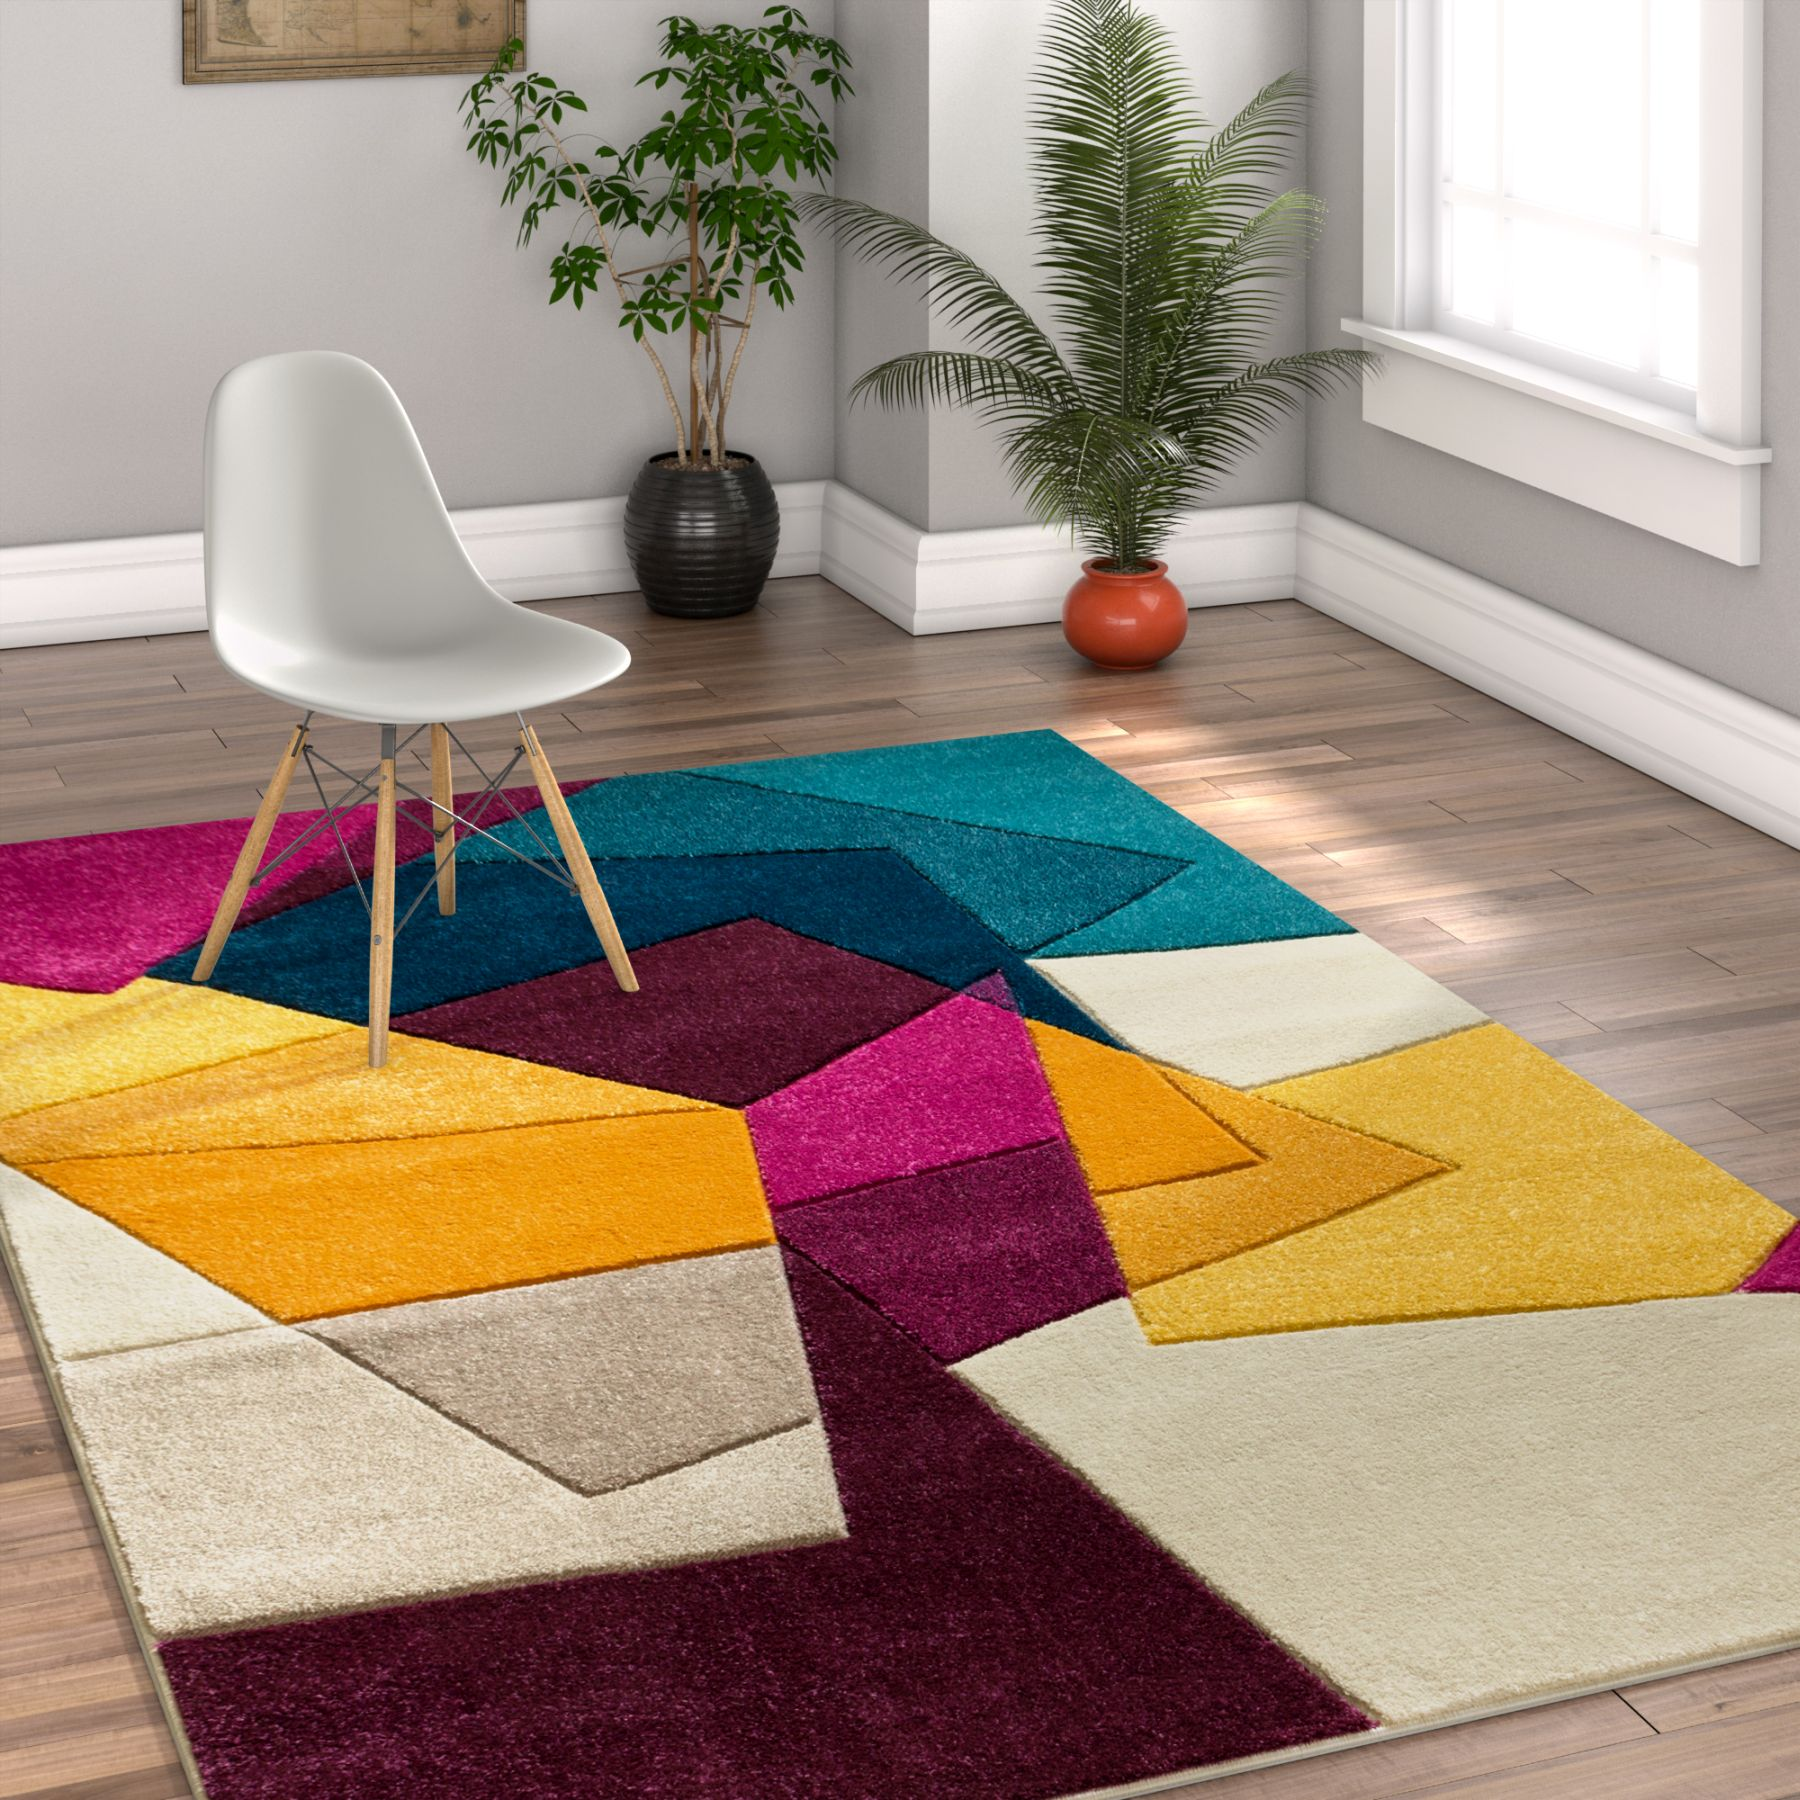 Well Woven Ruby Bombay Modern Geometric Violet Area Rug